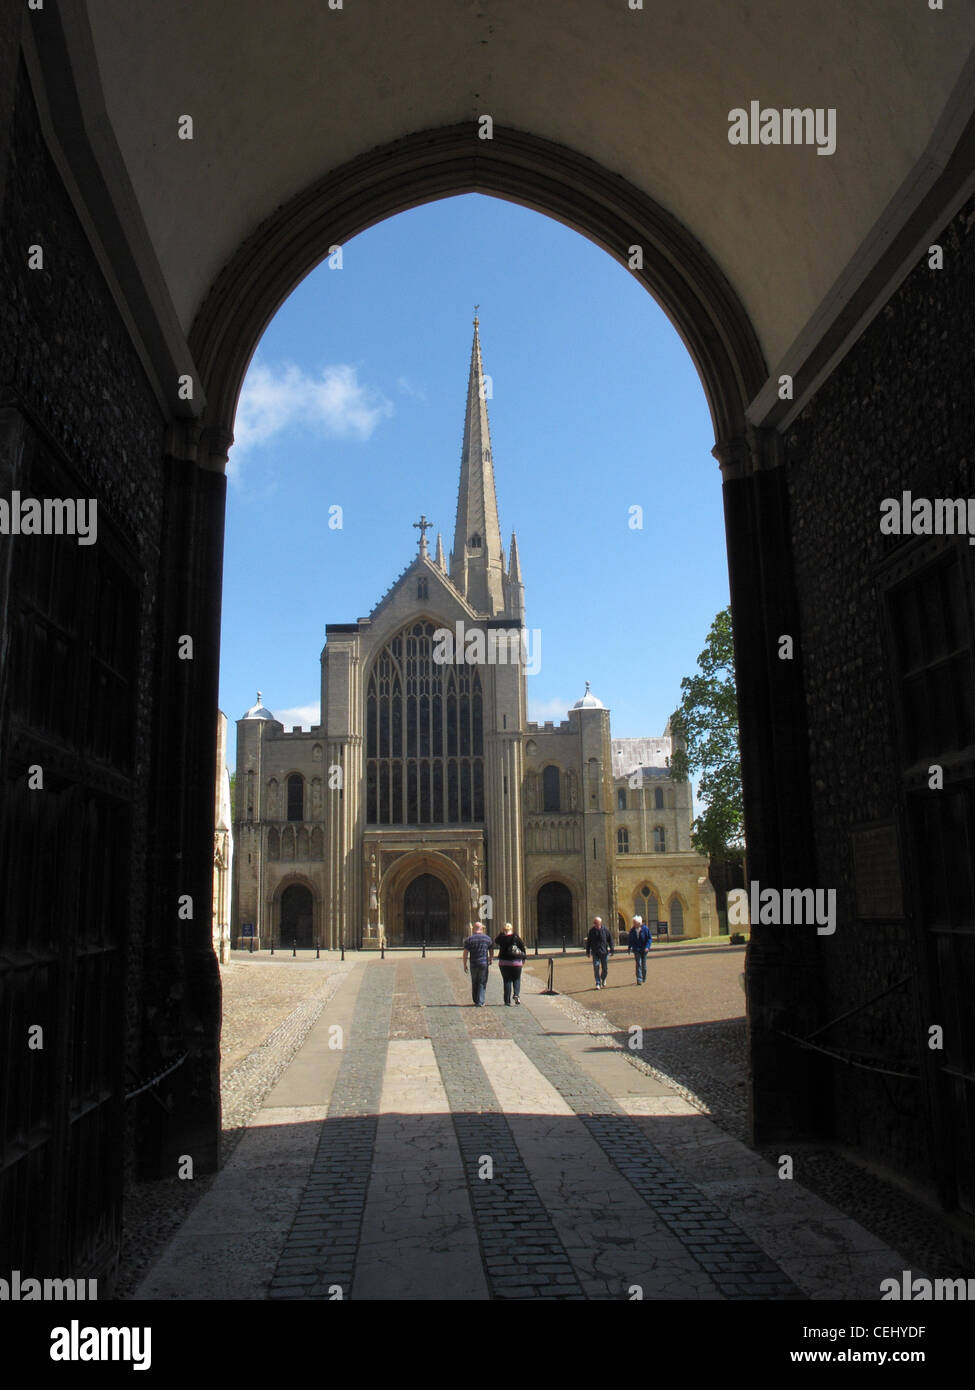 Norwich Cathedral, a 900 year old Benedictine inspired, Norman built centre of worship, viewed through an archway. - Stock Image